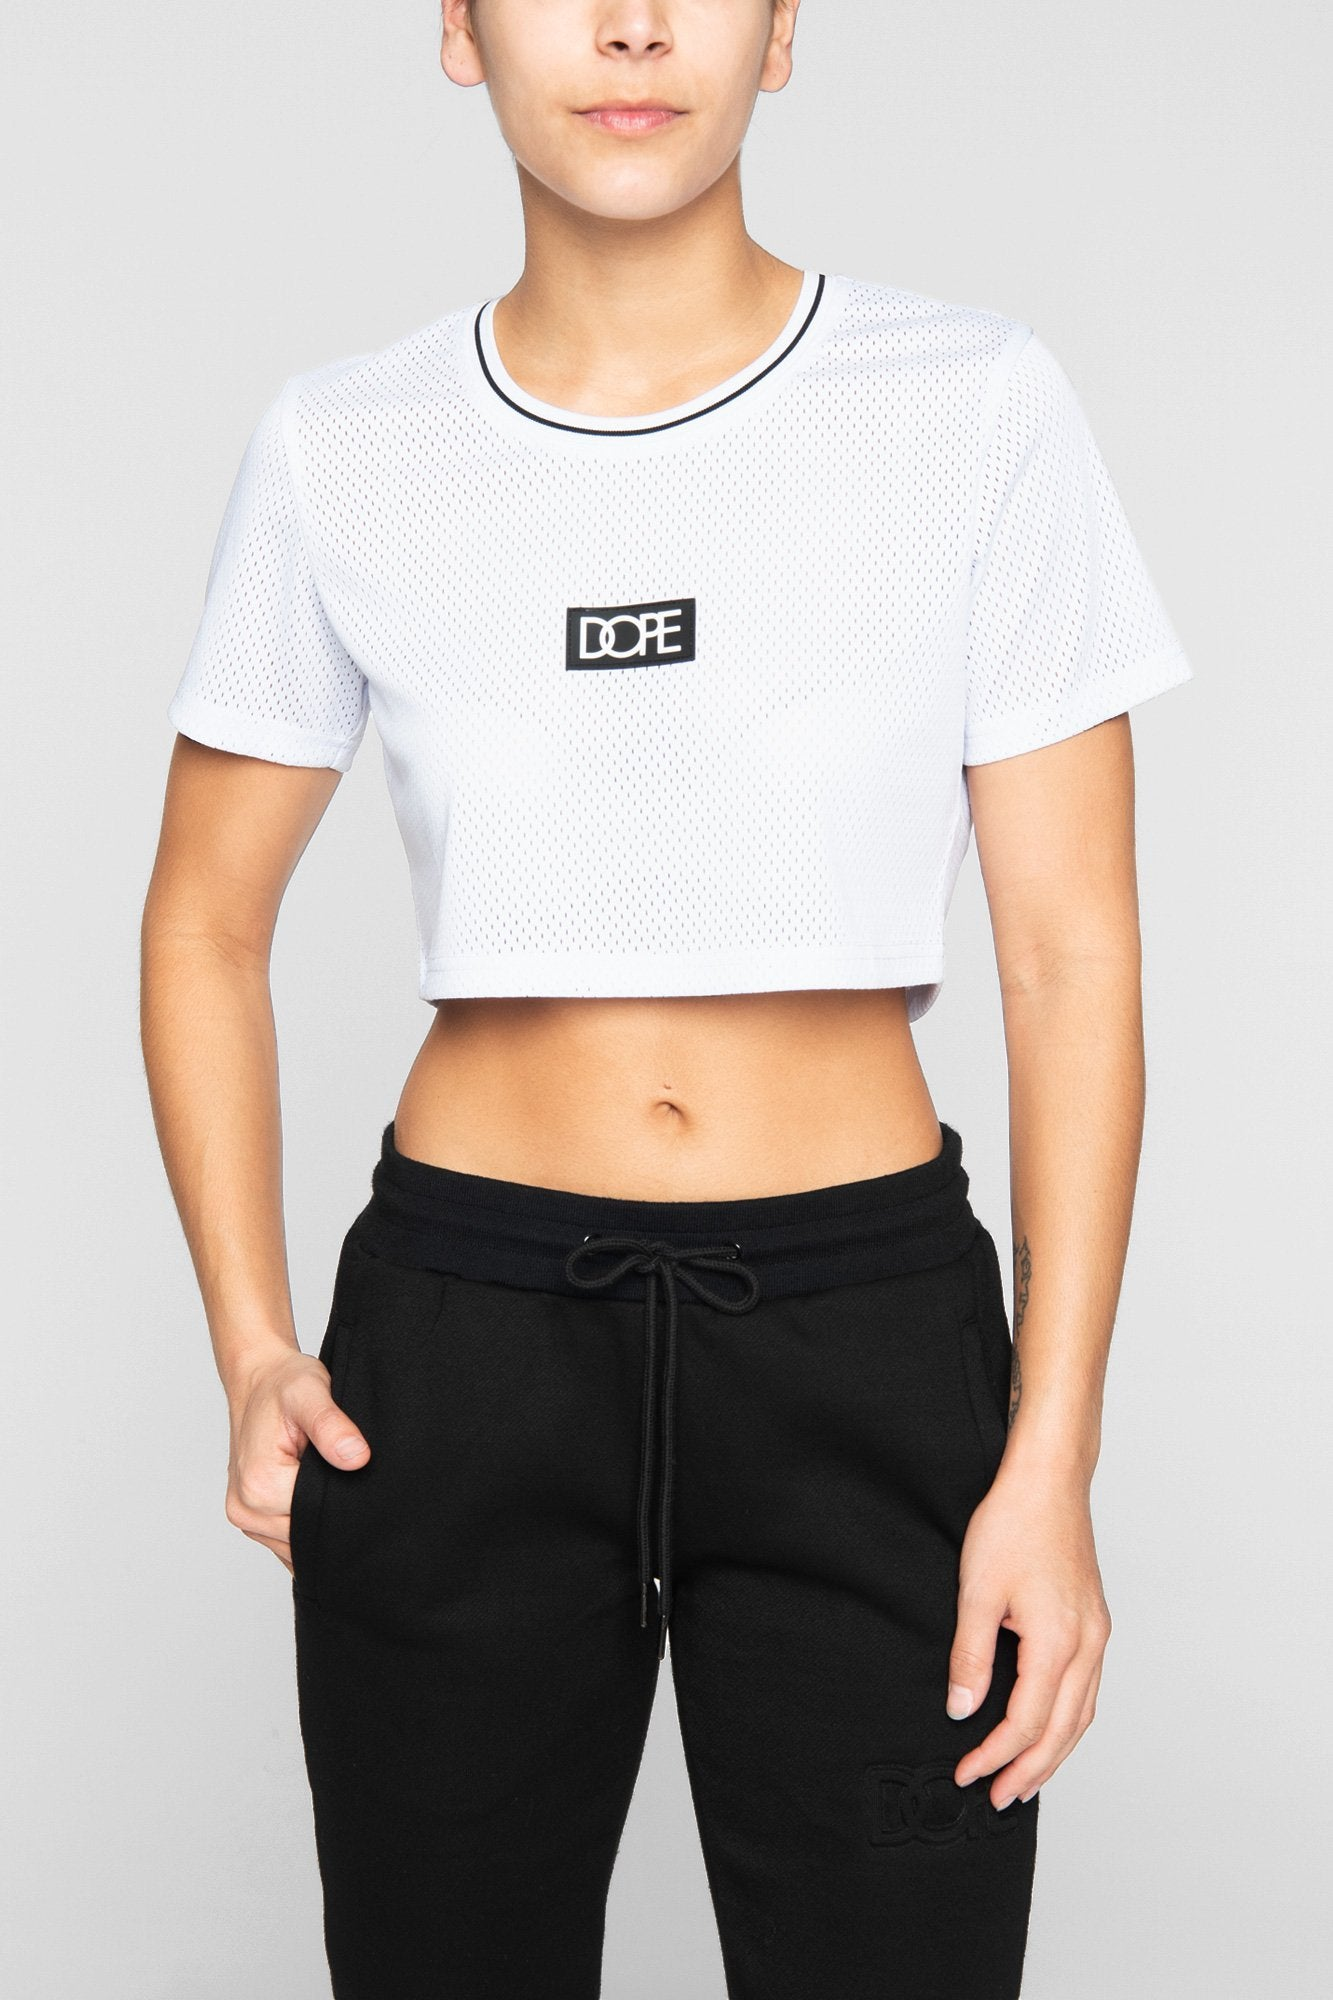 DOPE Cropped Mesh Jersey #White